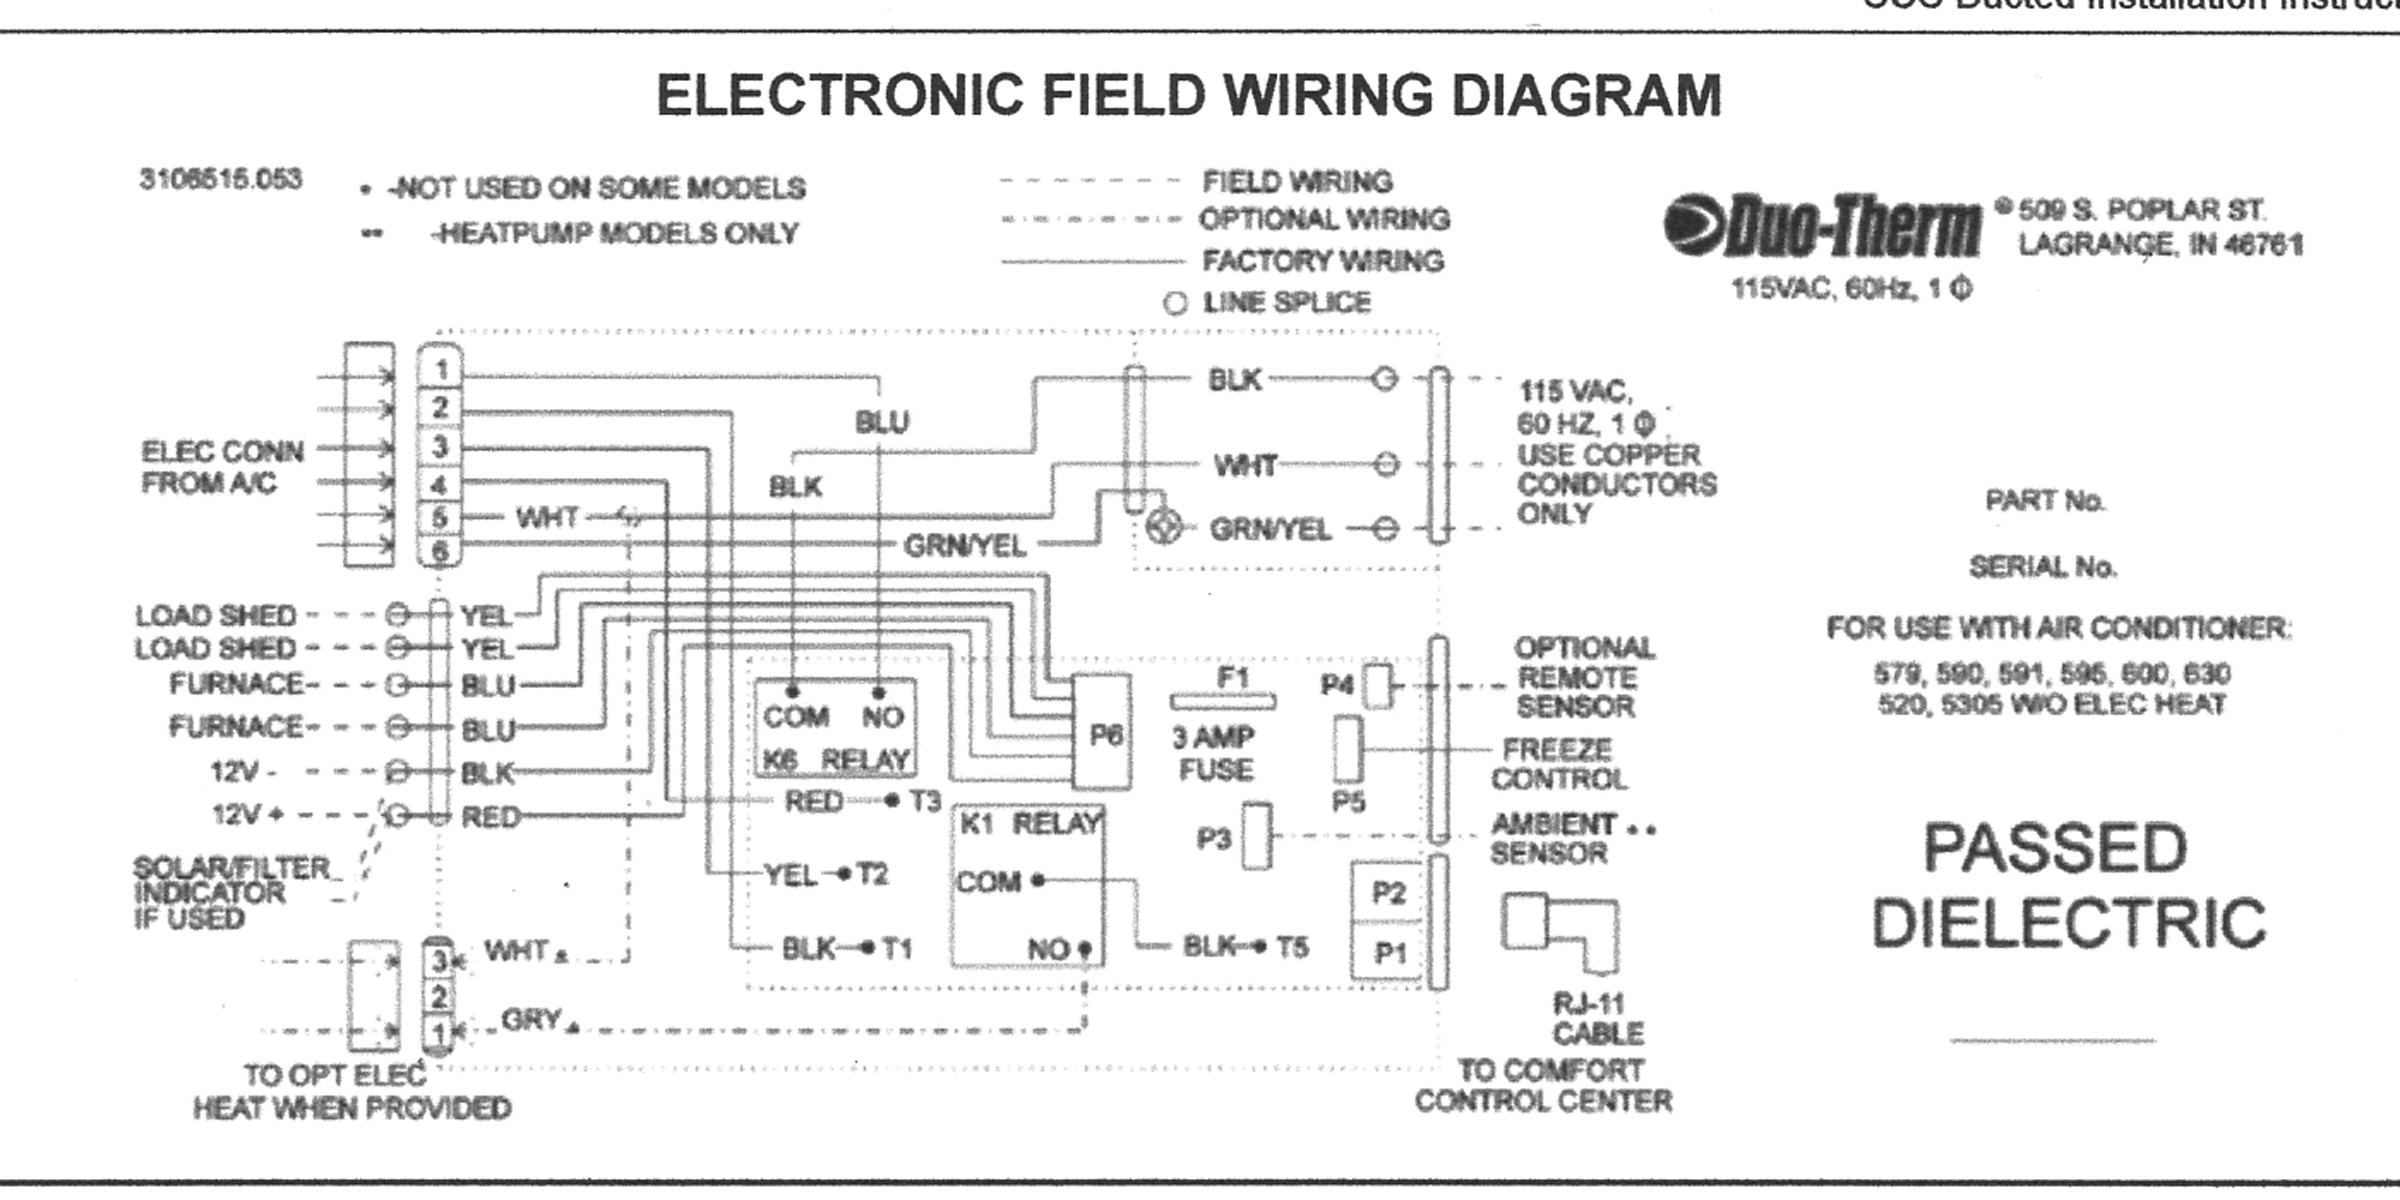 duo therm wiring schematic Collection-Wiring A Ac thermostat Diagram New Duo therm thermostat Wiring 20-j